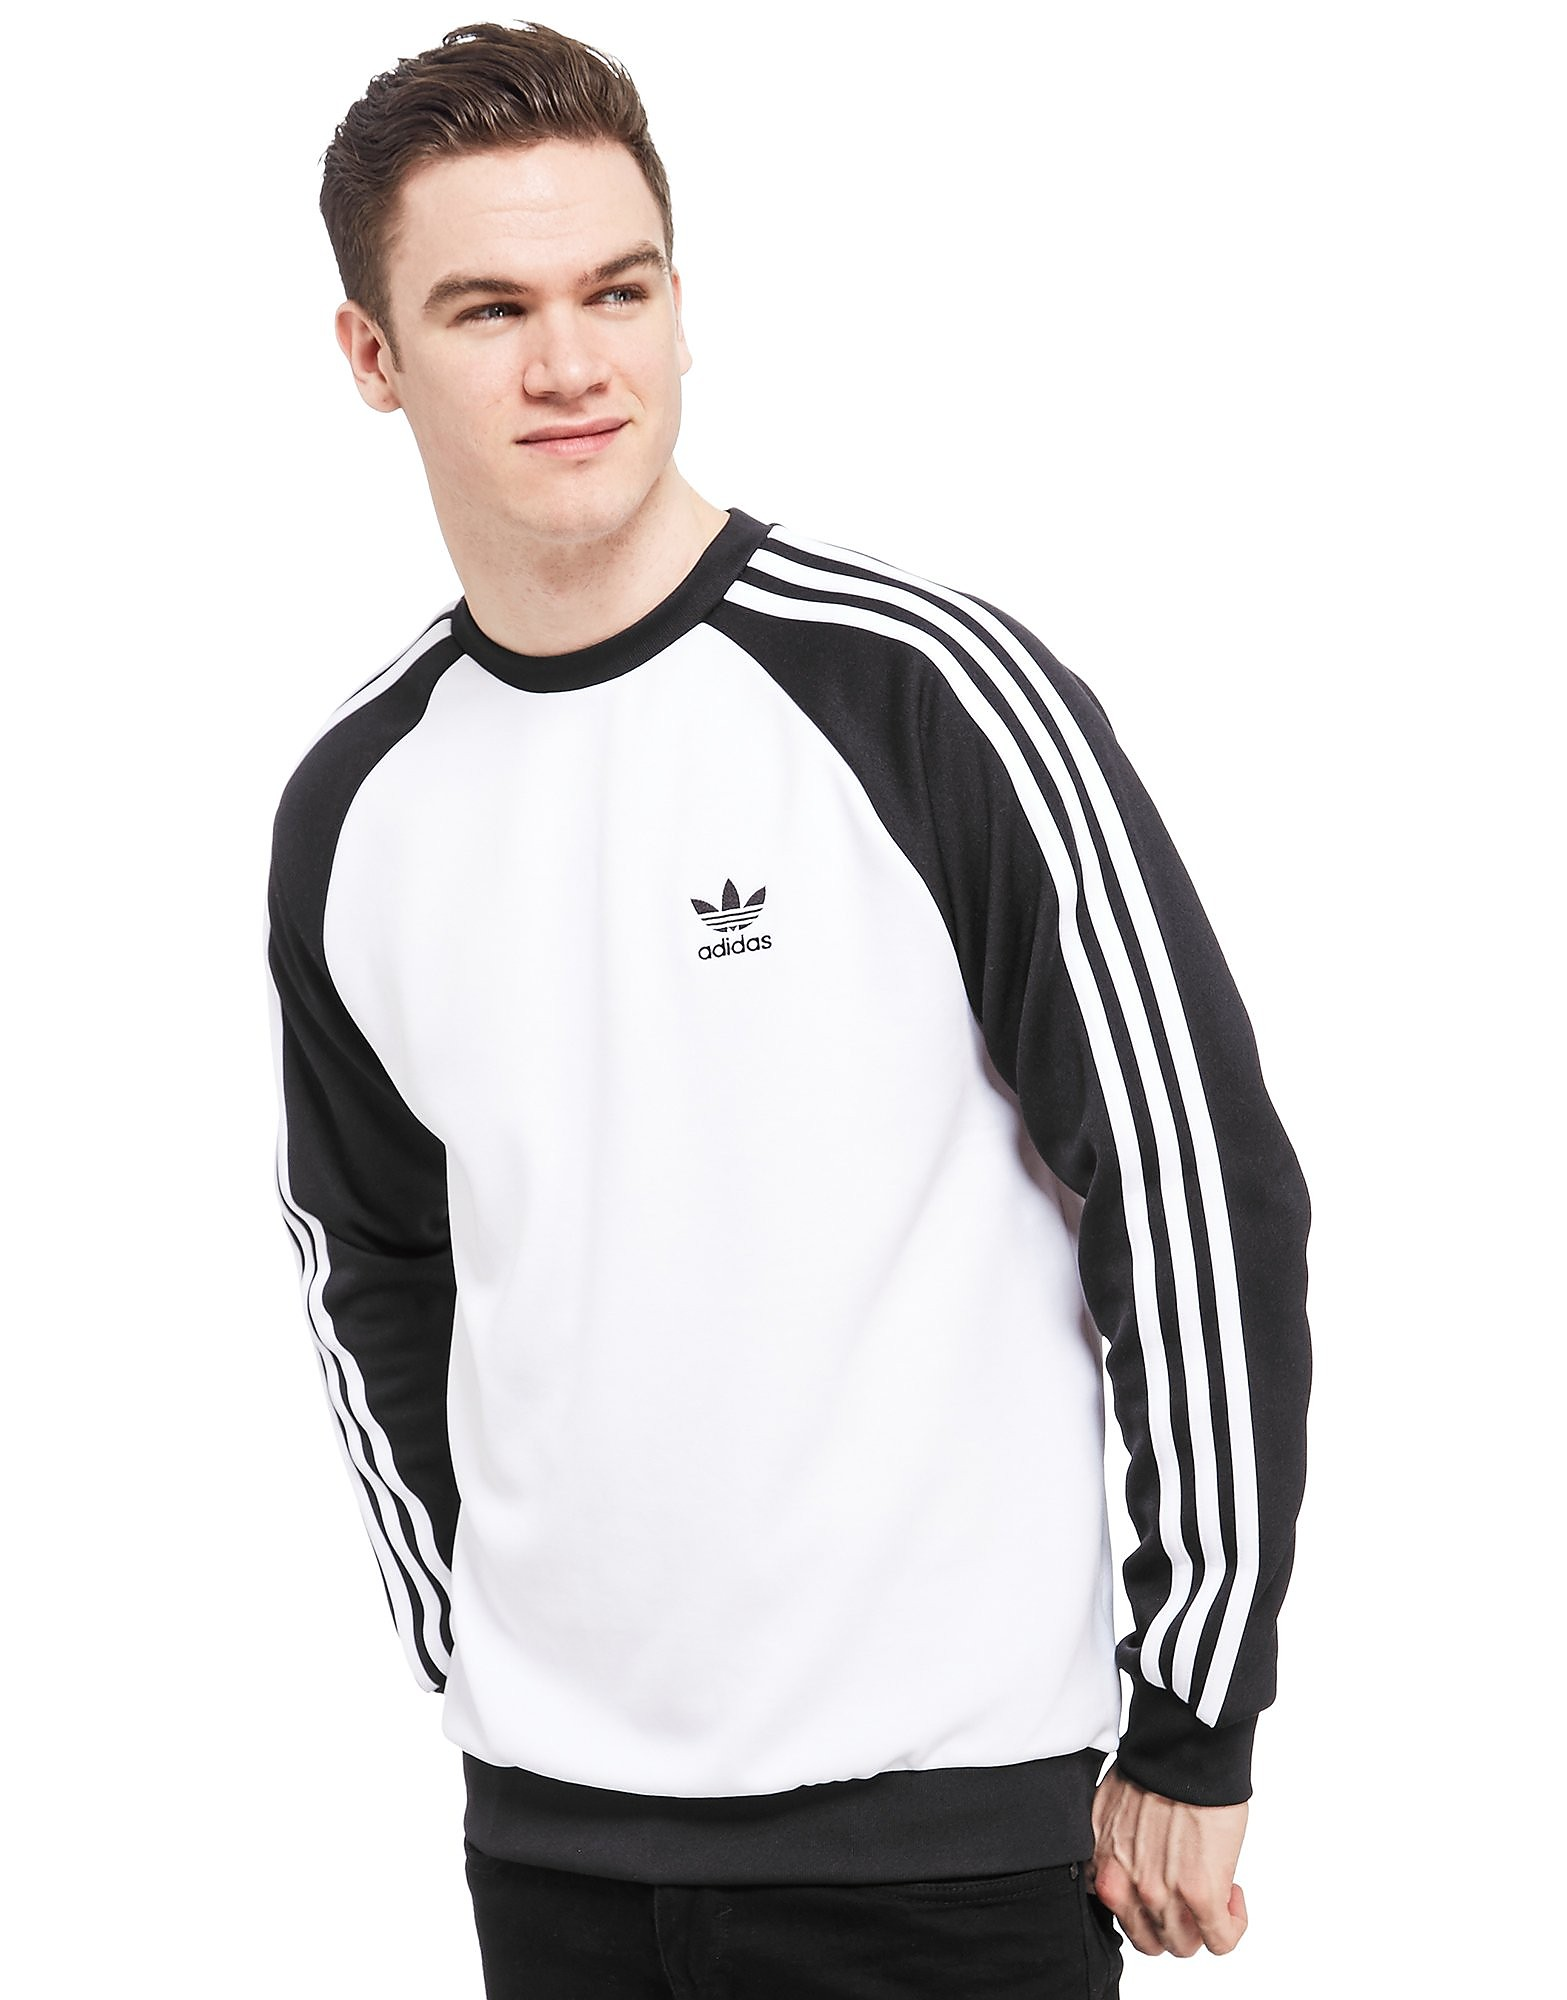 adidas Originals Sweatshirt Superstar